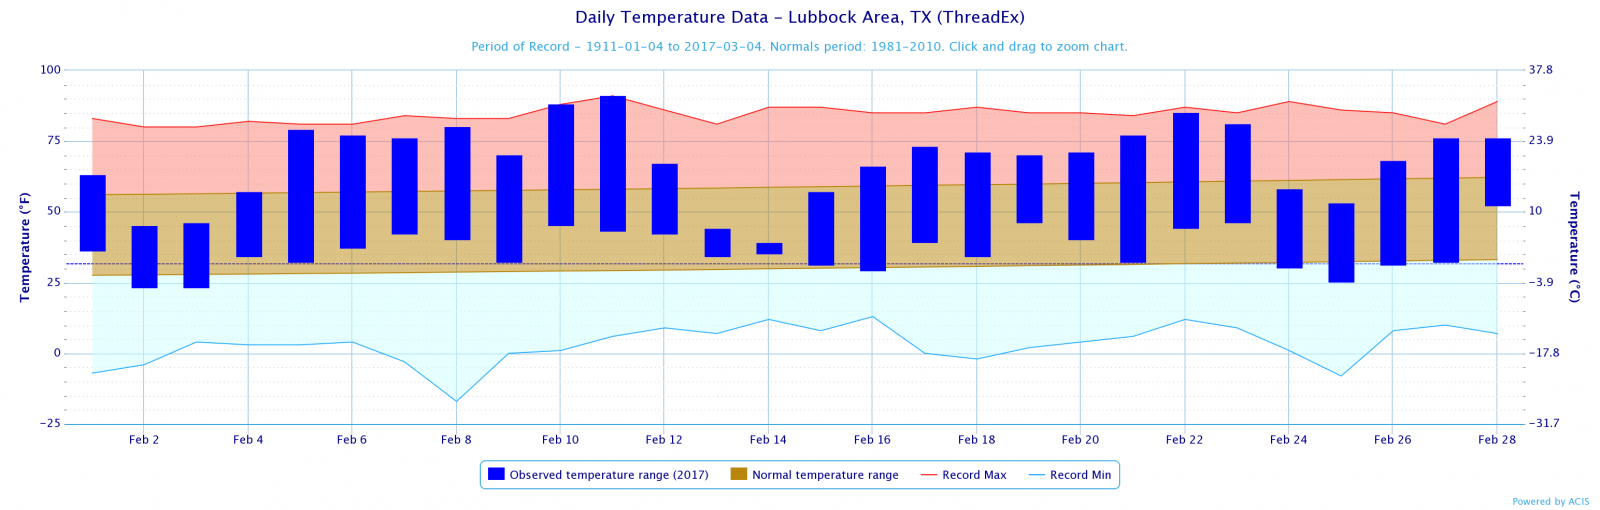 Daily Temperature Data at Lubbock, February 2017